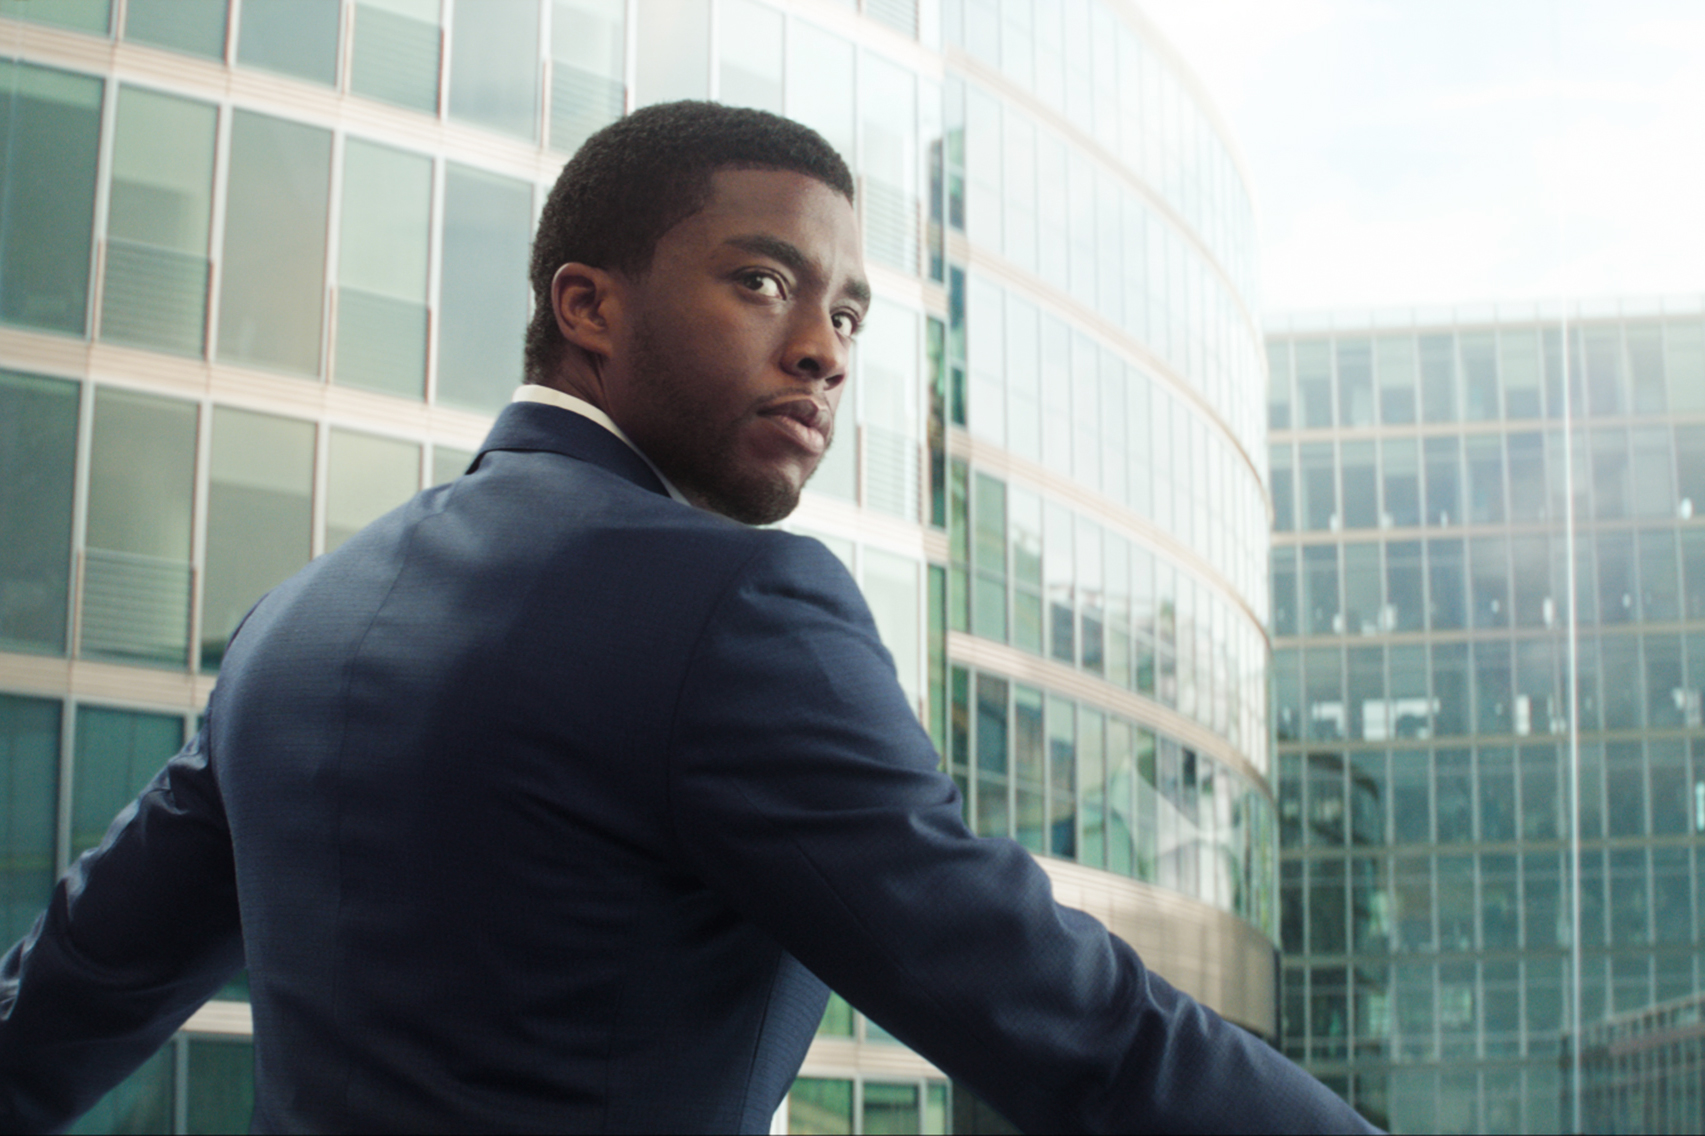 Chadwick Boseman as T'Challa in Captain America: Civil War.